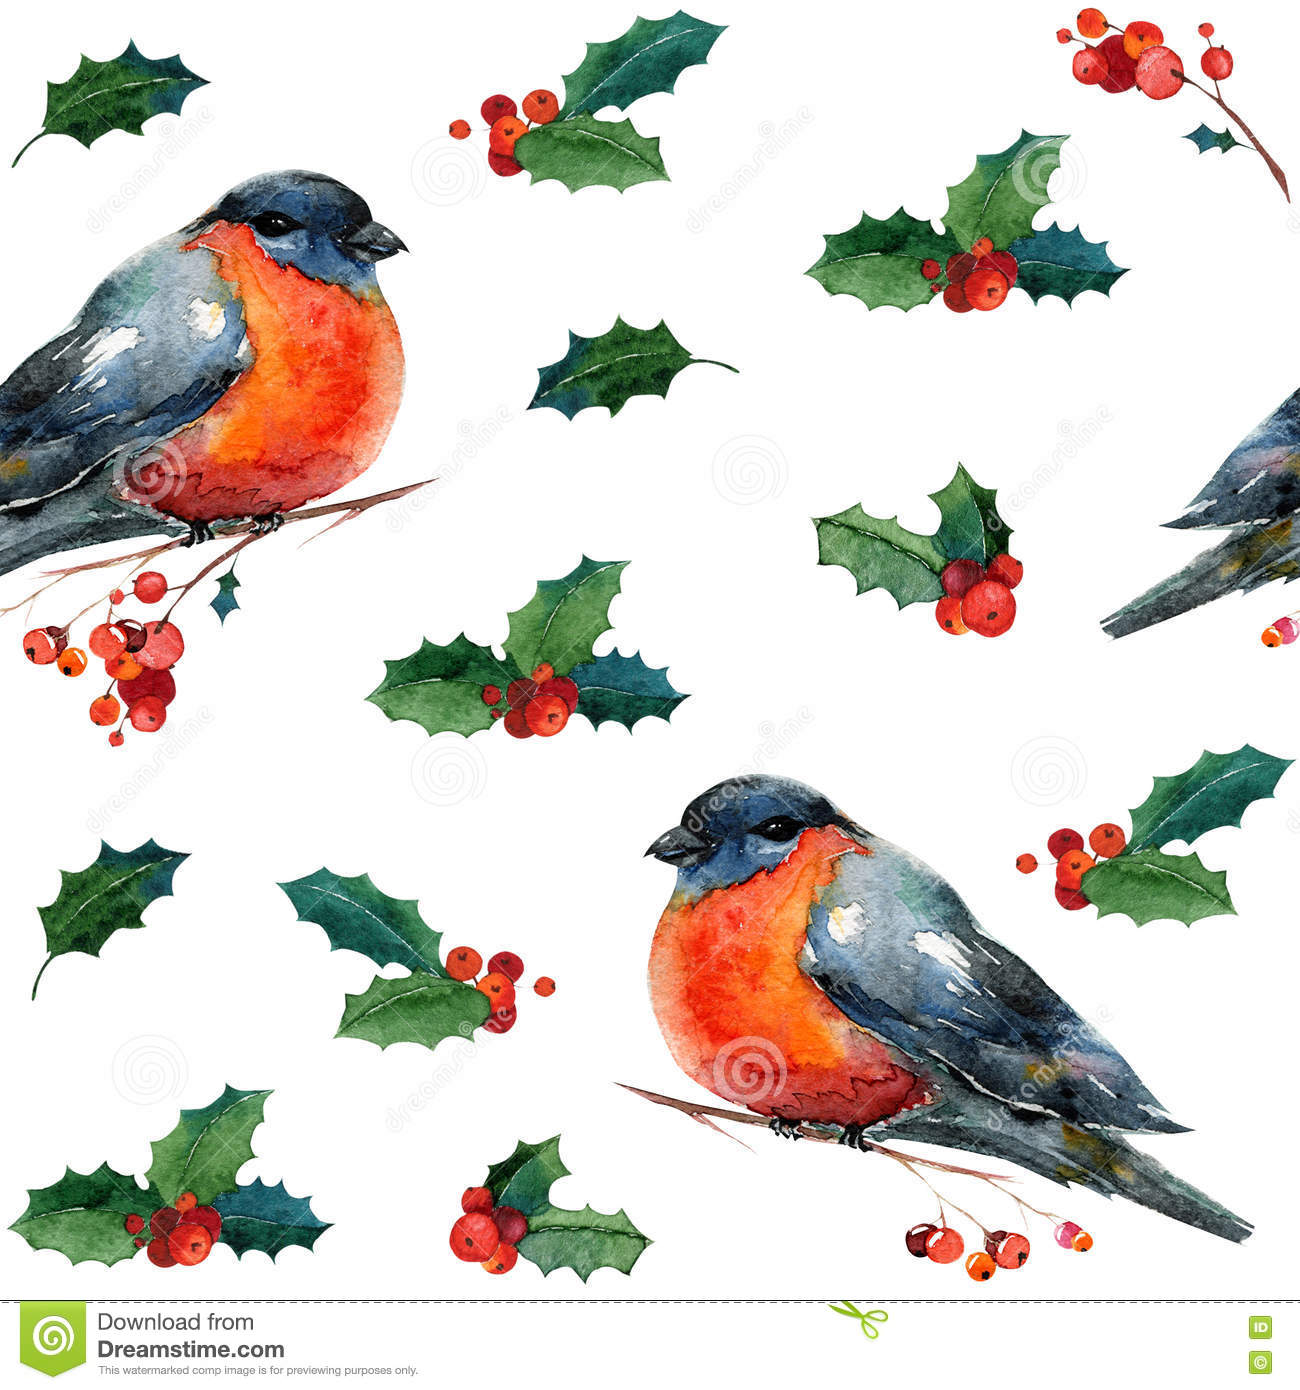 red robin bird background - Is Red Robin Open On Christmas